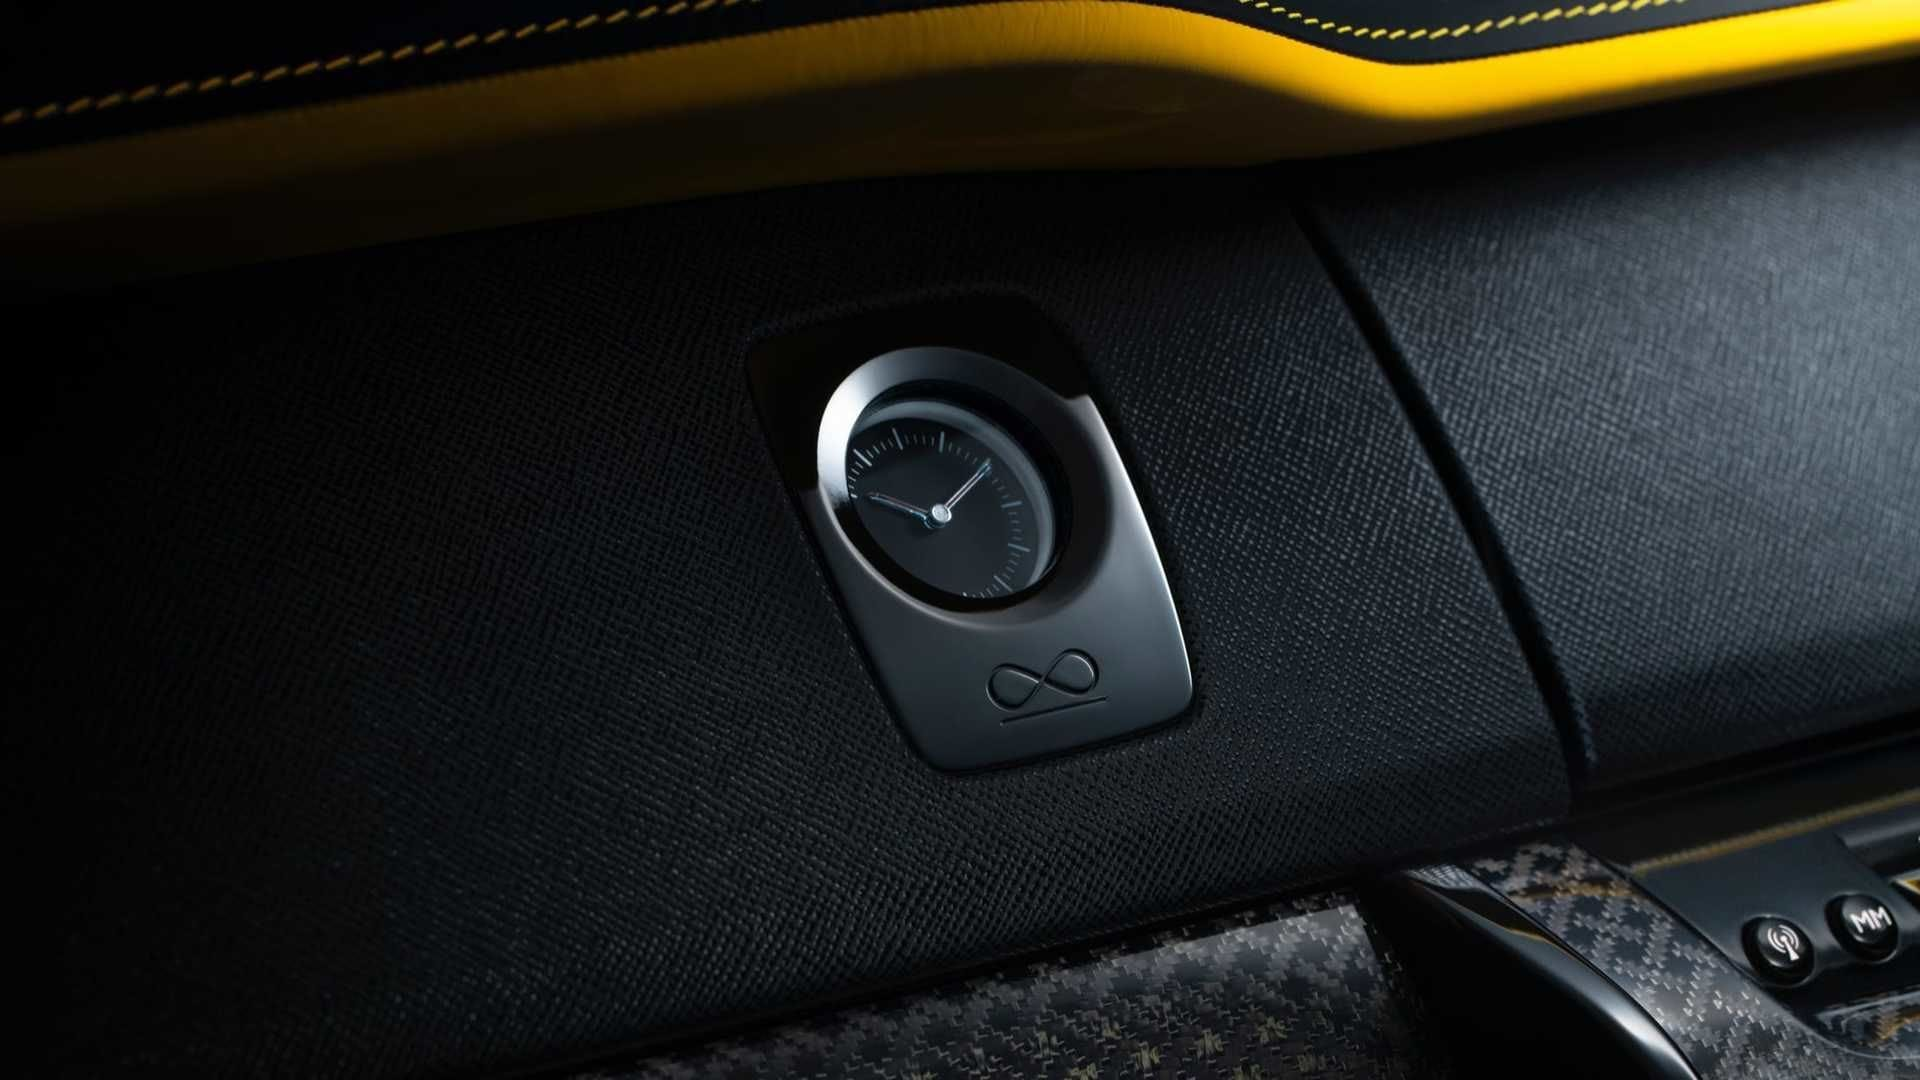 The dash of the new SUV wears a luxury carbon fibre finish.